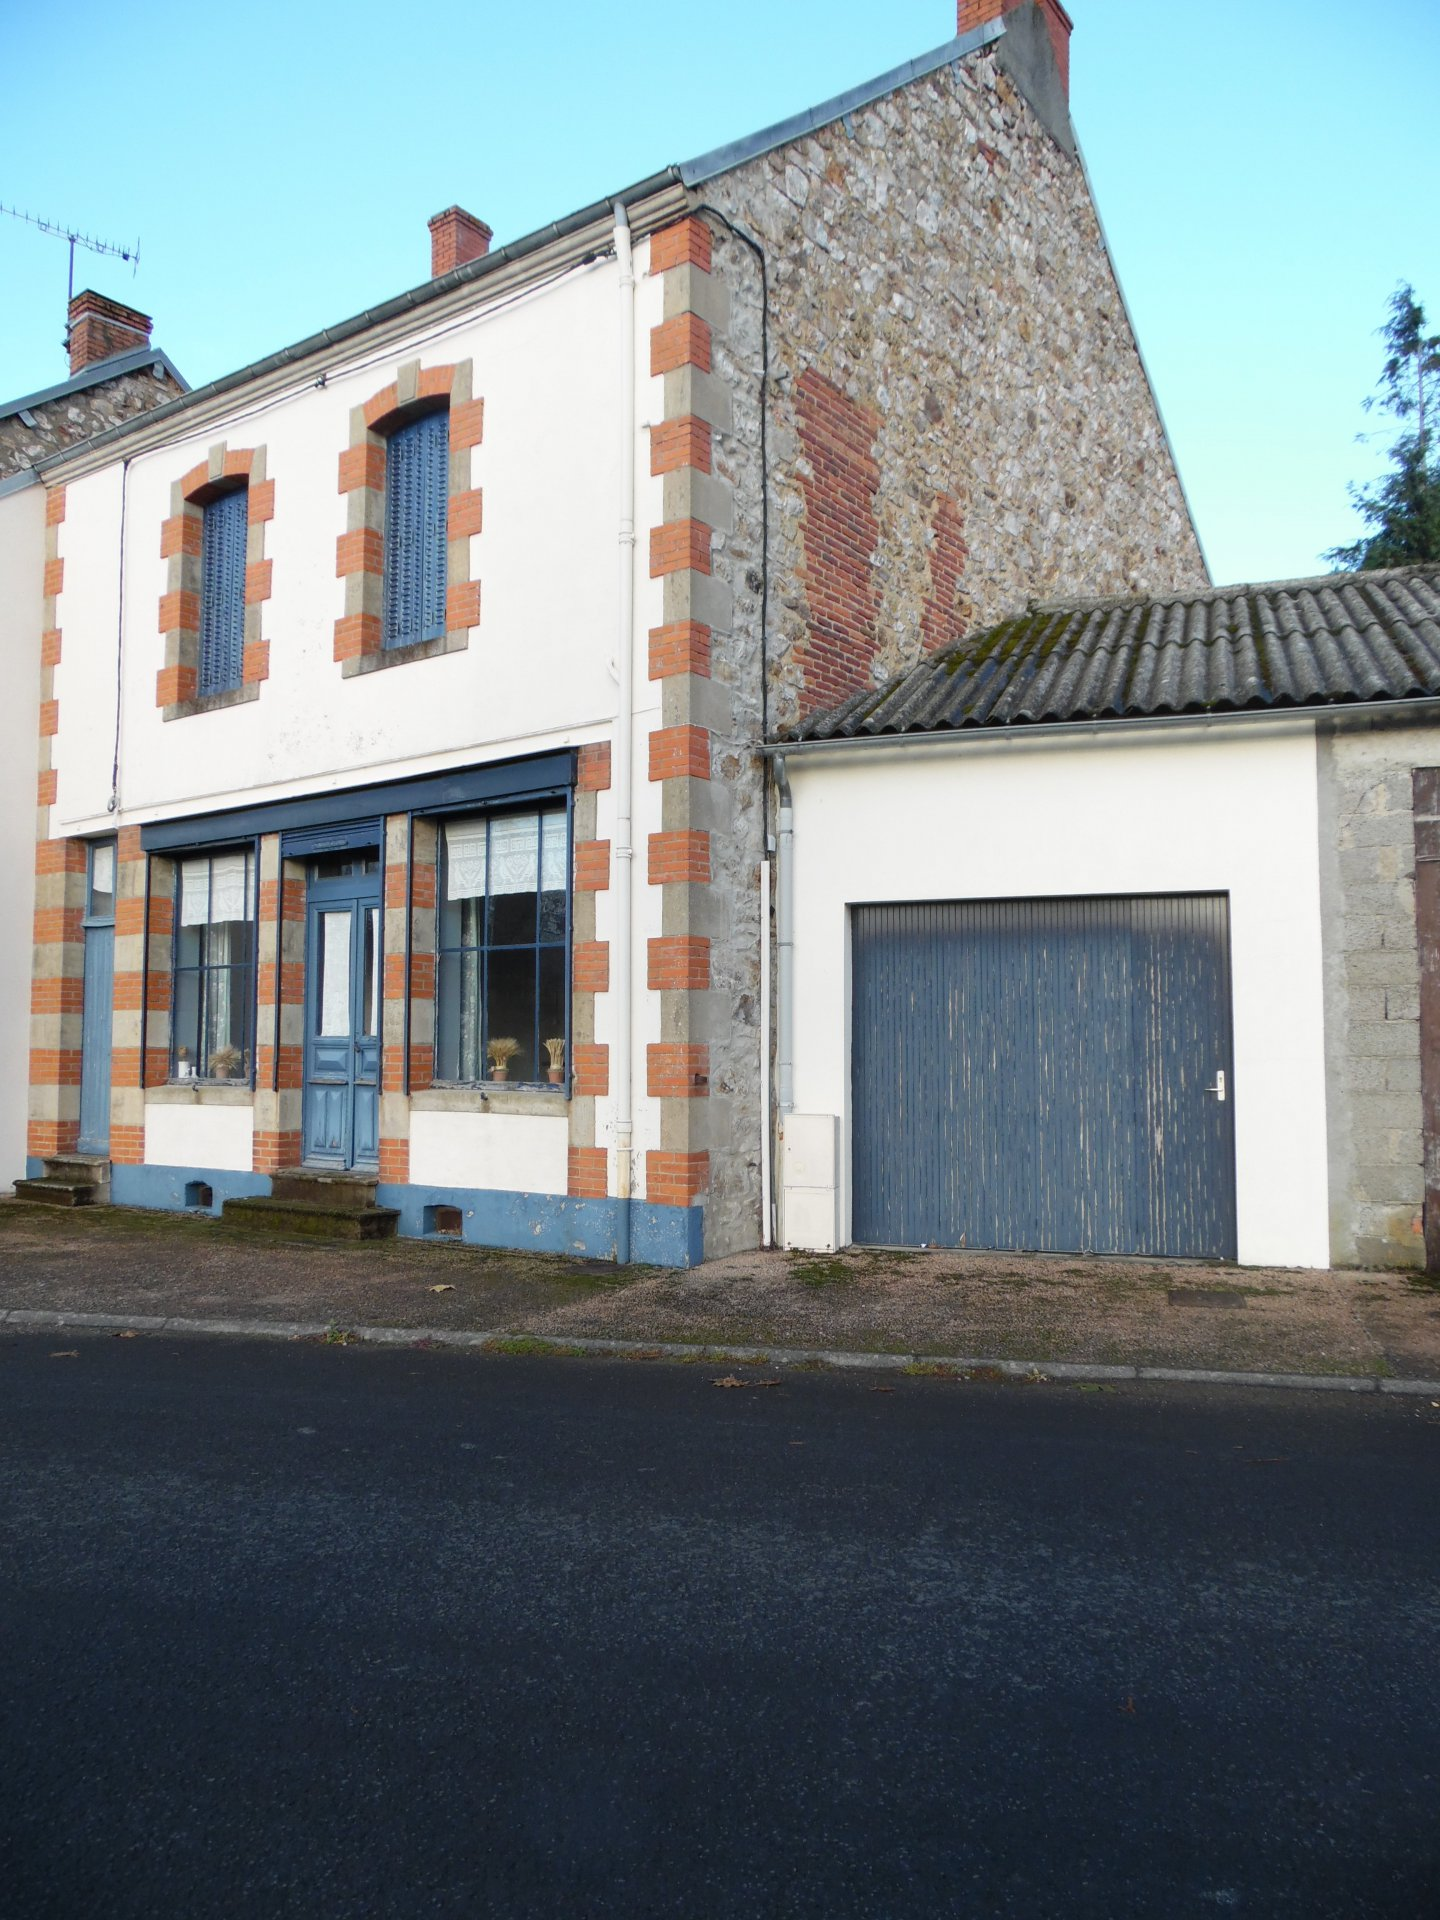 For sale in Auvergne house, garage and garden (418m²)